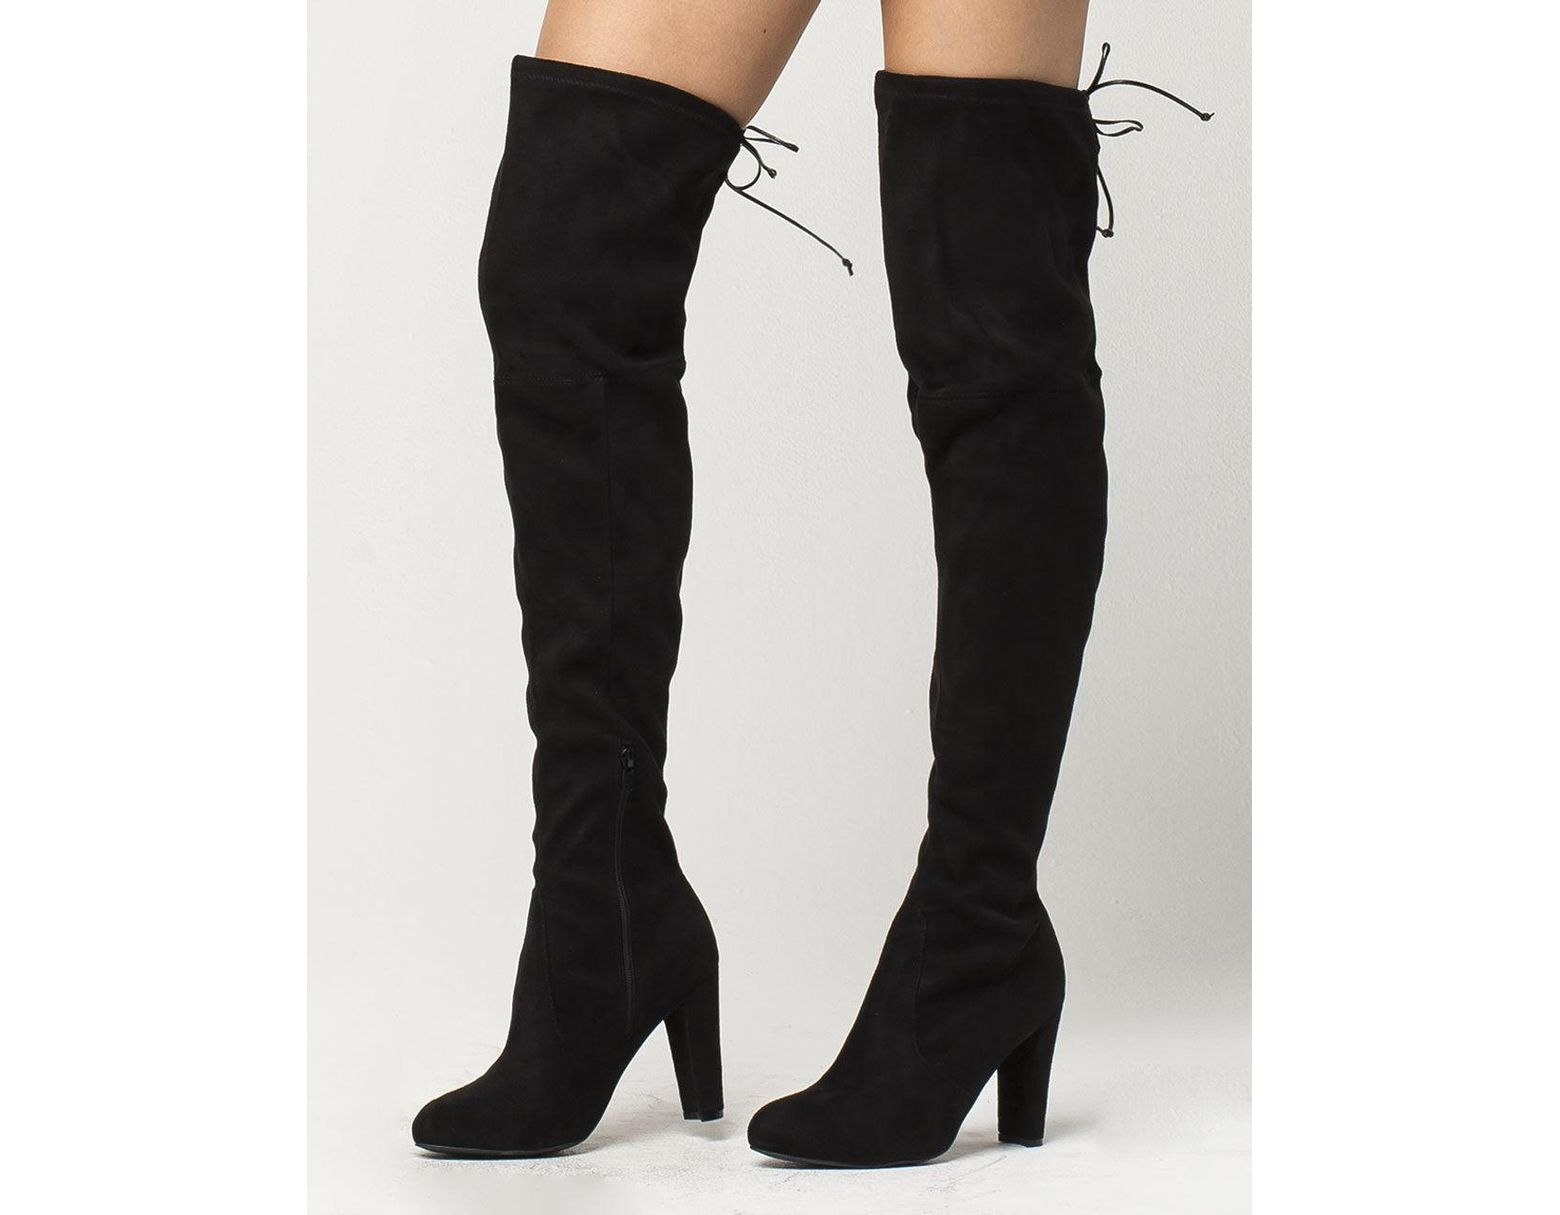 55535f95211 Black Over The Knee Heeled Womens Boots